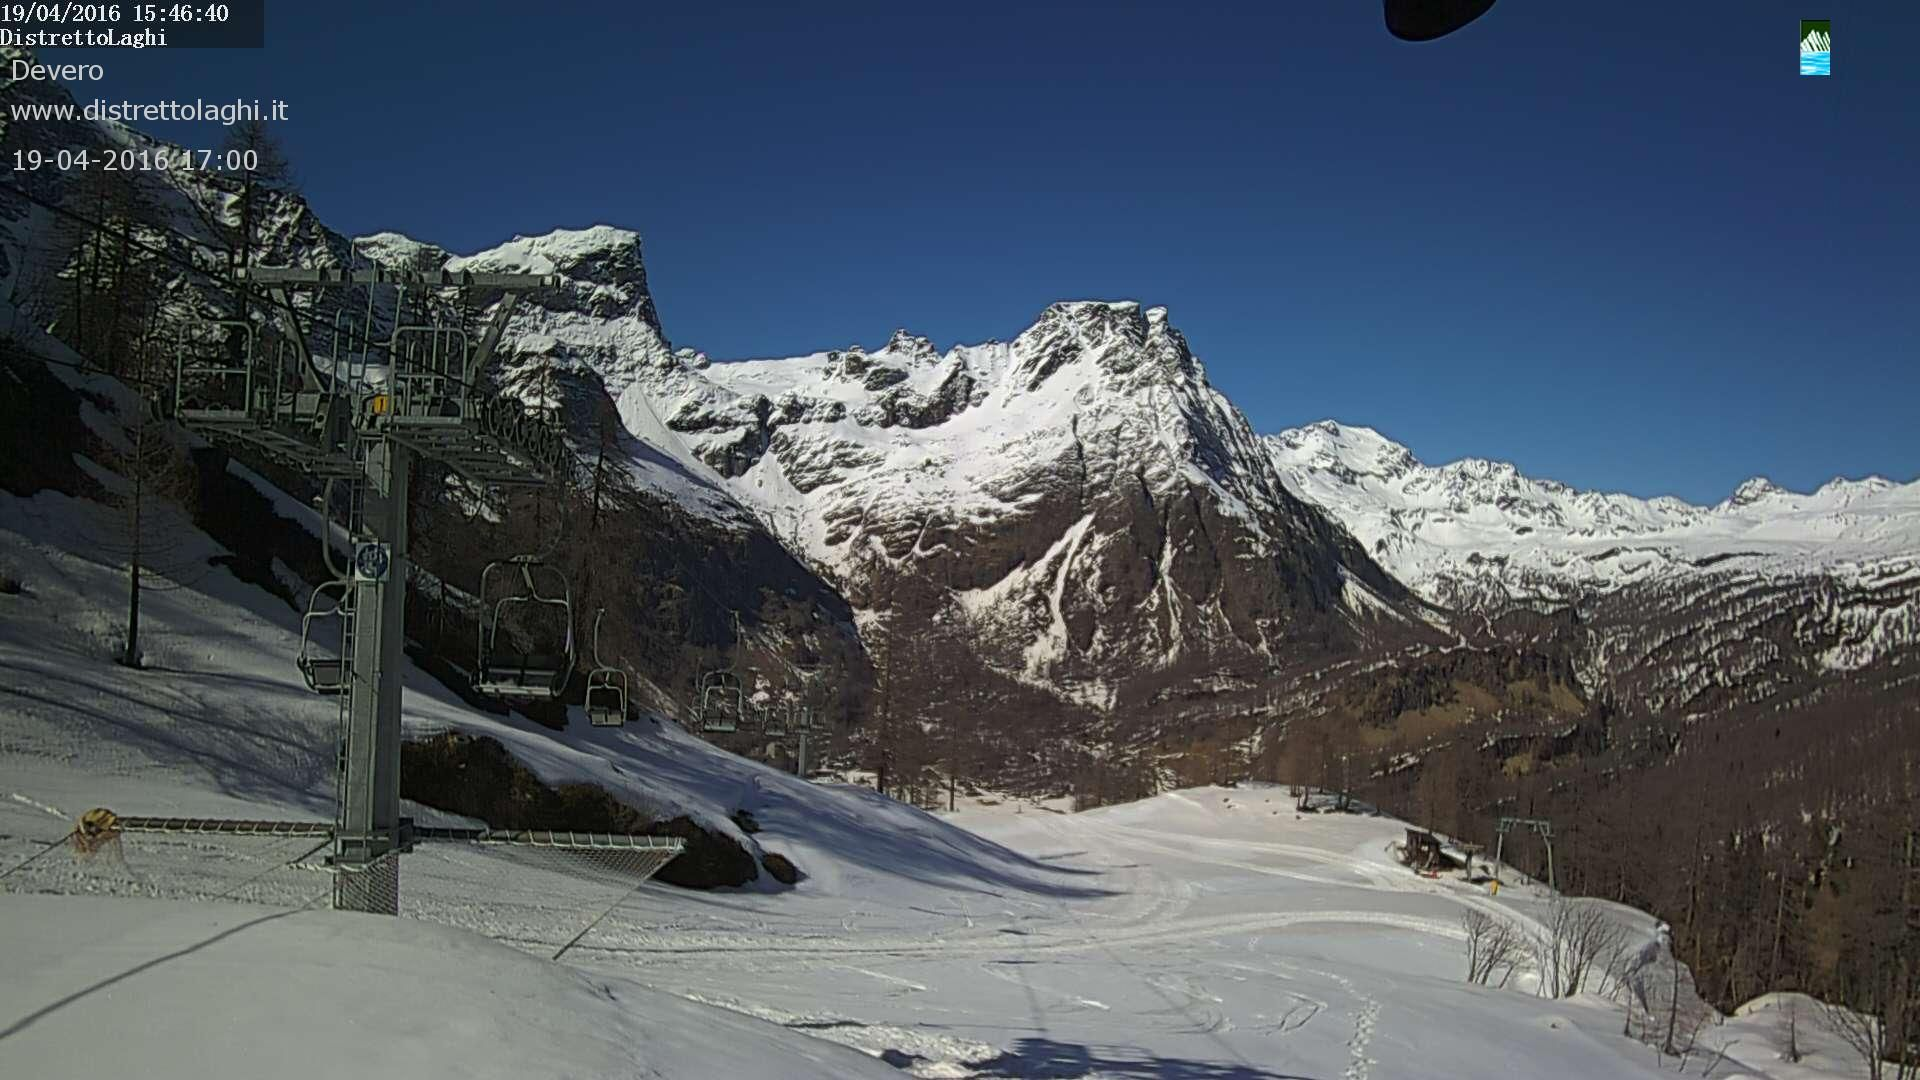 Foto Bollettino Neve Alpe Devero: http://www.bollettinoneve.net/bollettino-neve-alpe-devero.html Bollettino neve Piemonte #neve #montagna #snowboard #snow #mountain #sciare #inverno #ski #skislope #skier #skiing #winter #alpi #alps #appennini alps | italy | ski chalet | snowboarding | heritage site | Snow Style | Snow photography | Snow Falls | mountain photography | snowy mountains | mountain photography | Mountains and snow | snow mountain | mountaineering | trekking | Ski Resorts…